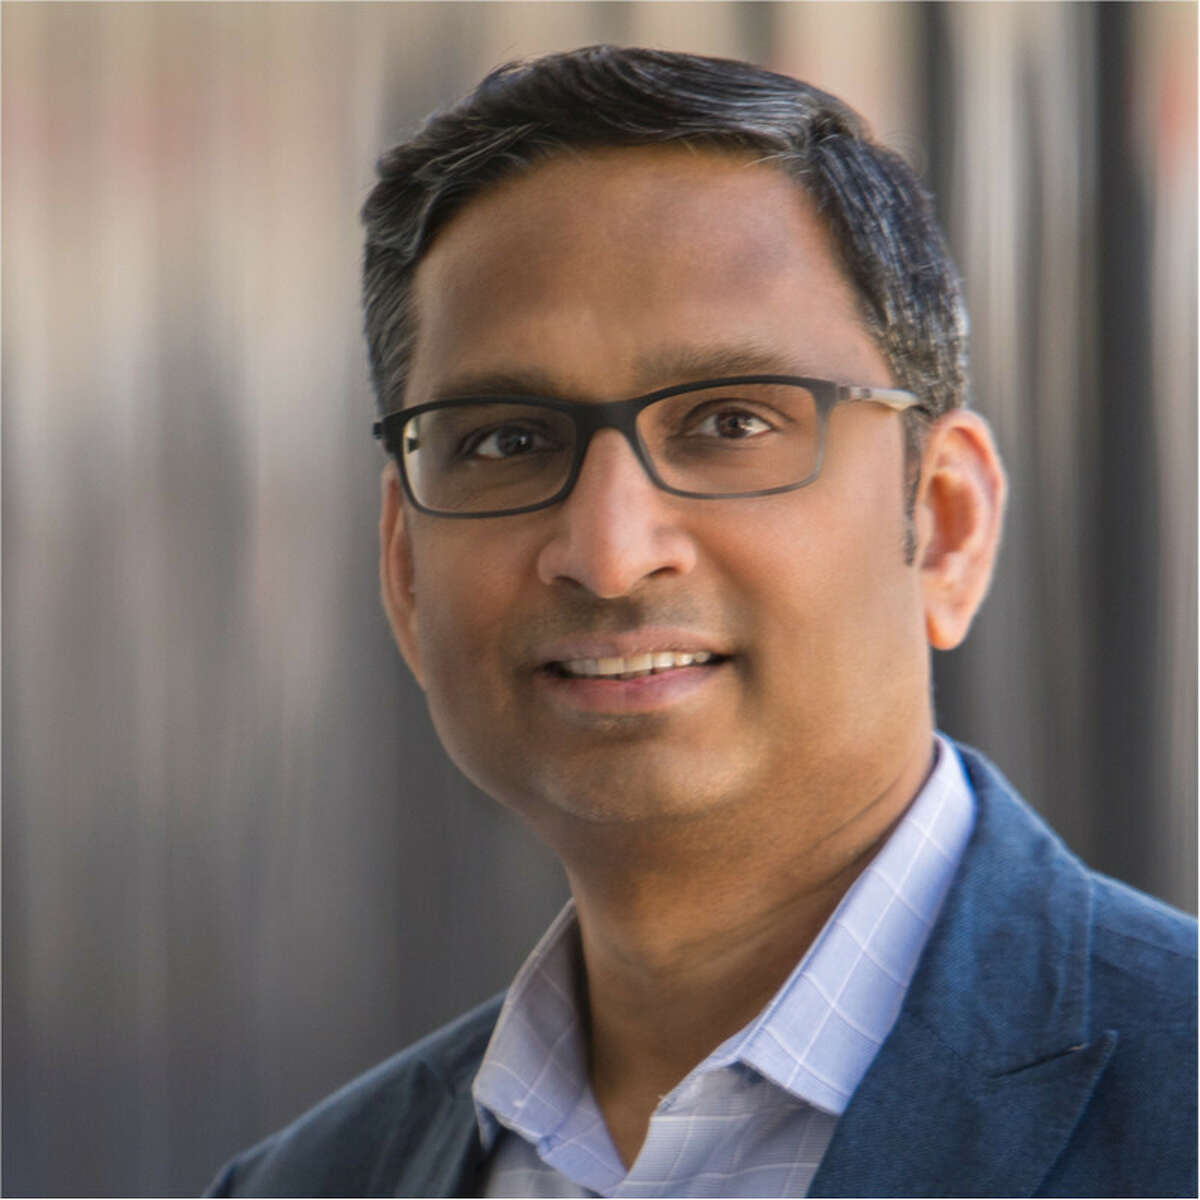 Mukesh Khare, vice president of Hybrid Cloud Research at IBM